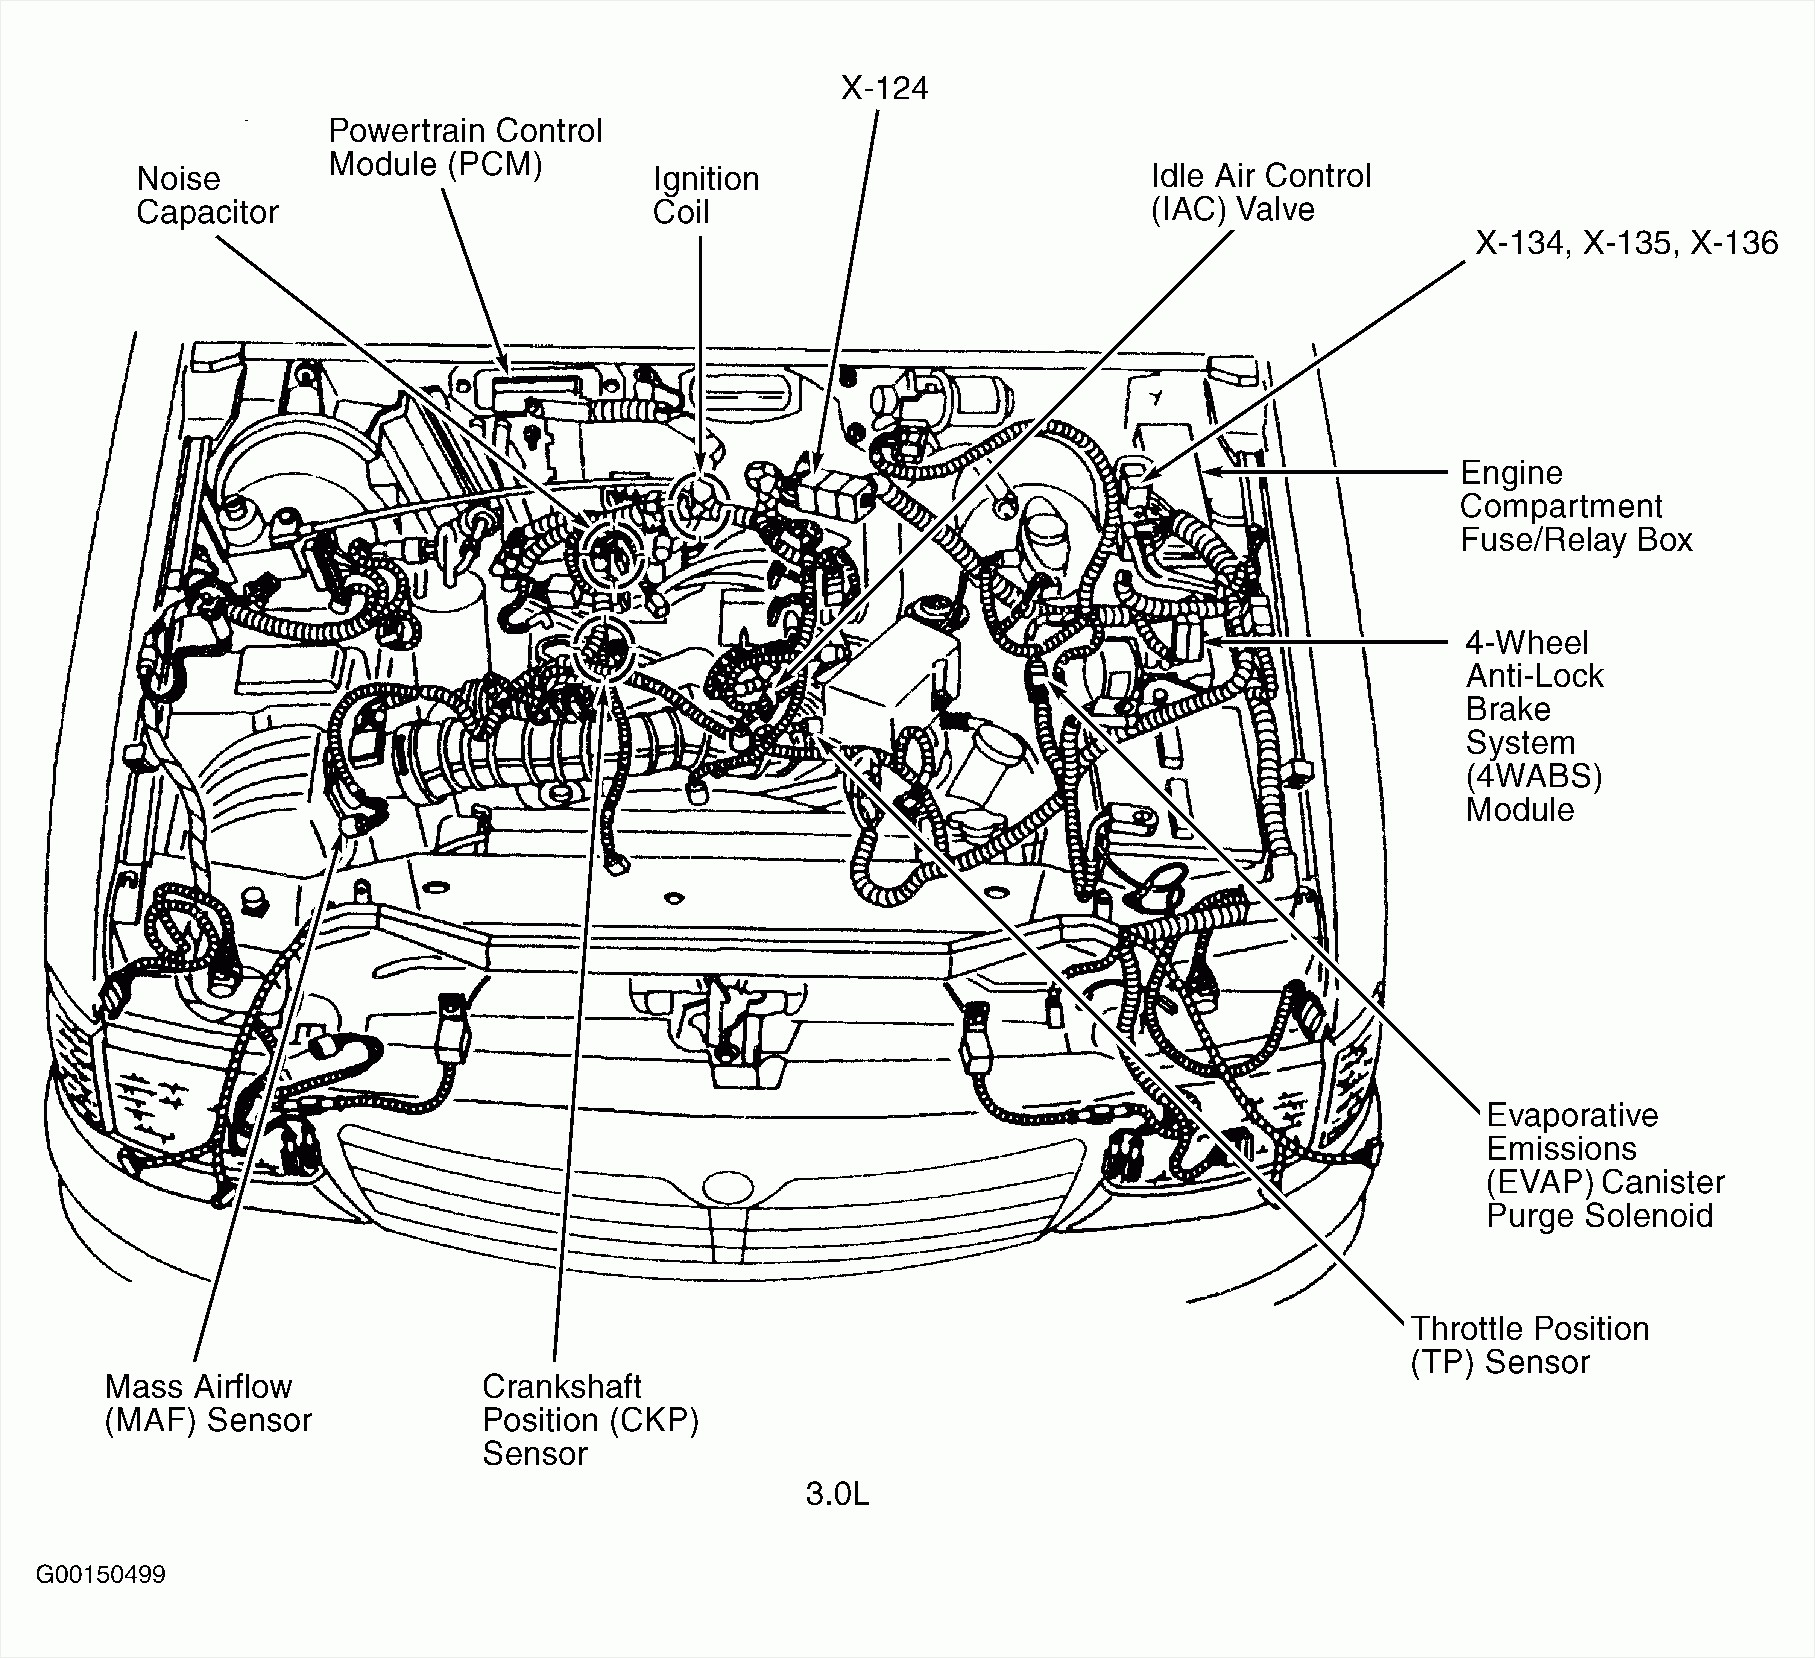 Toyota 3 0 V6 Engine Wiring Diagram on ford mustang wiring schematics